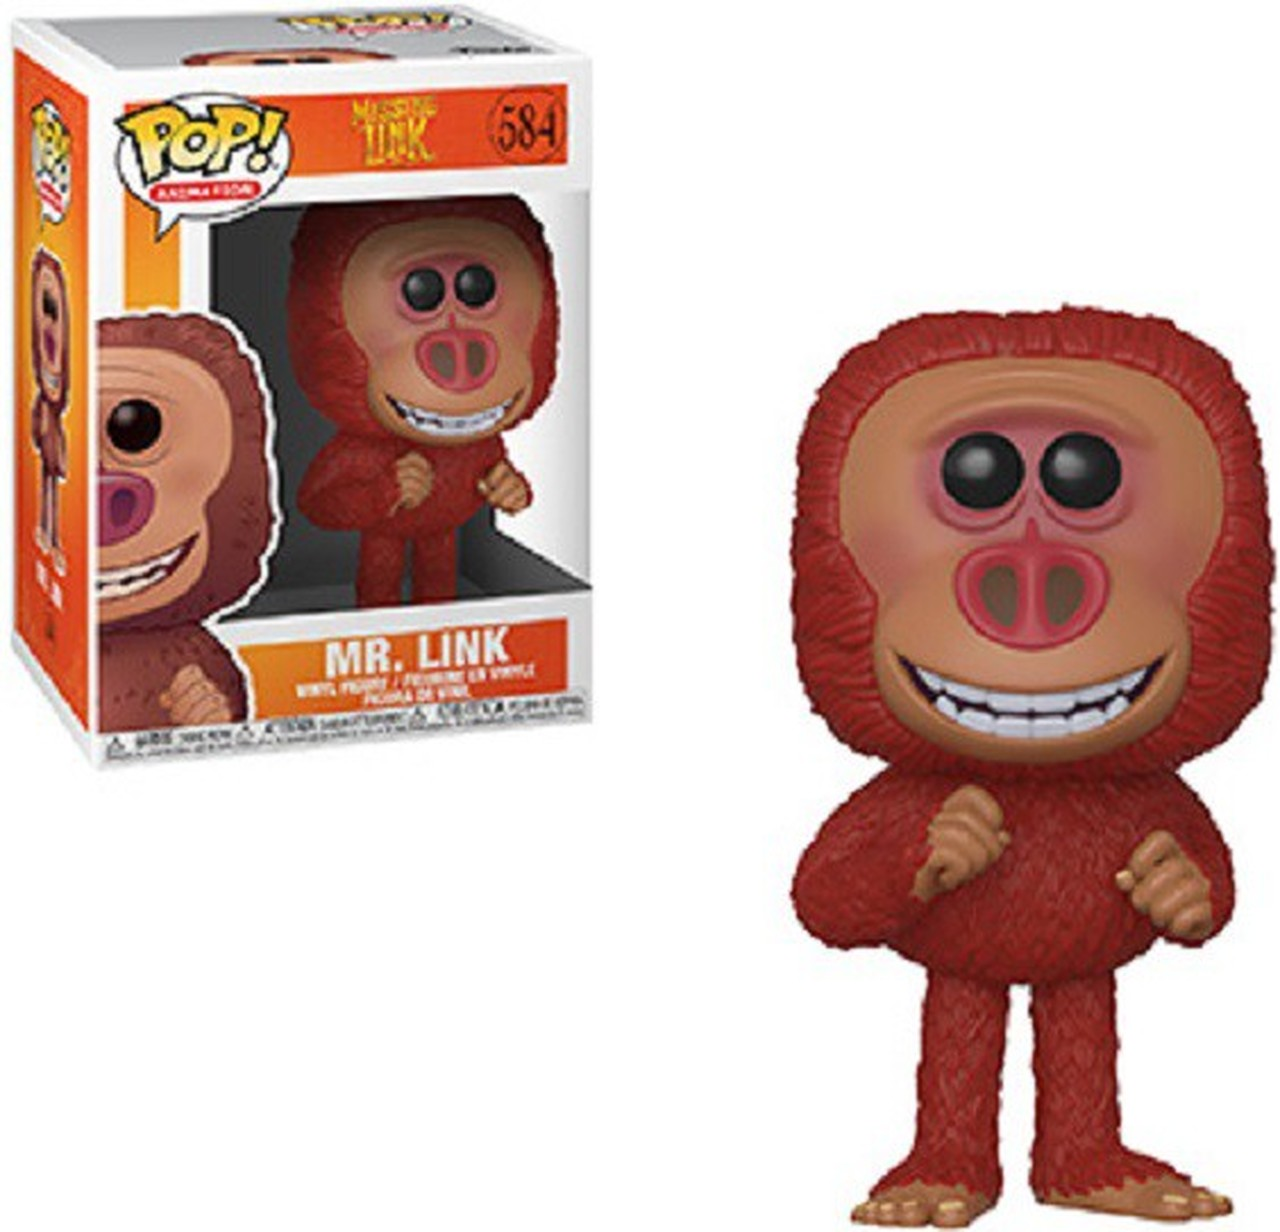 POP! Animation: Missing Link - Mr. Link Vinyl Figure #584